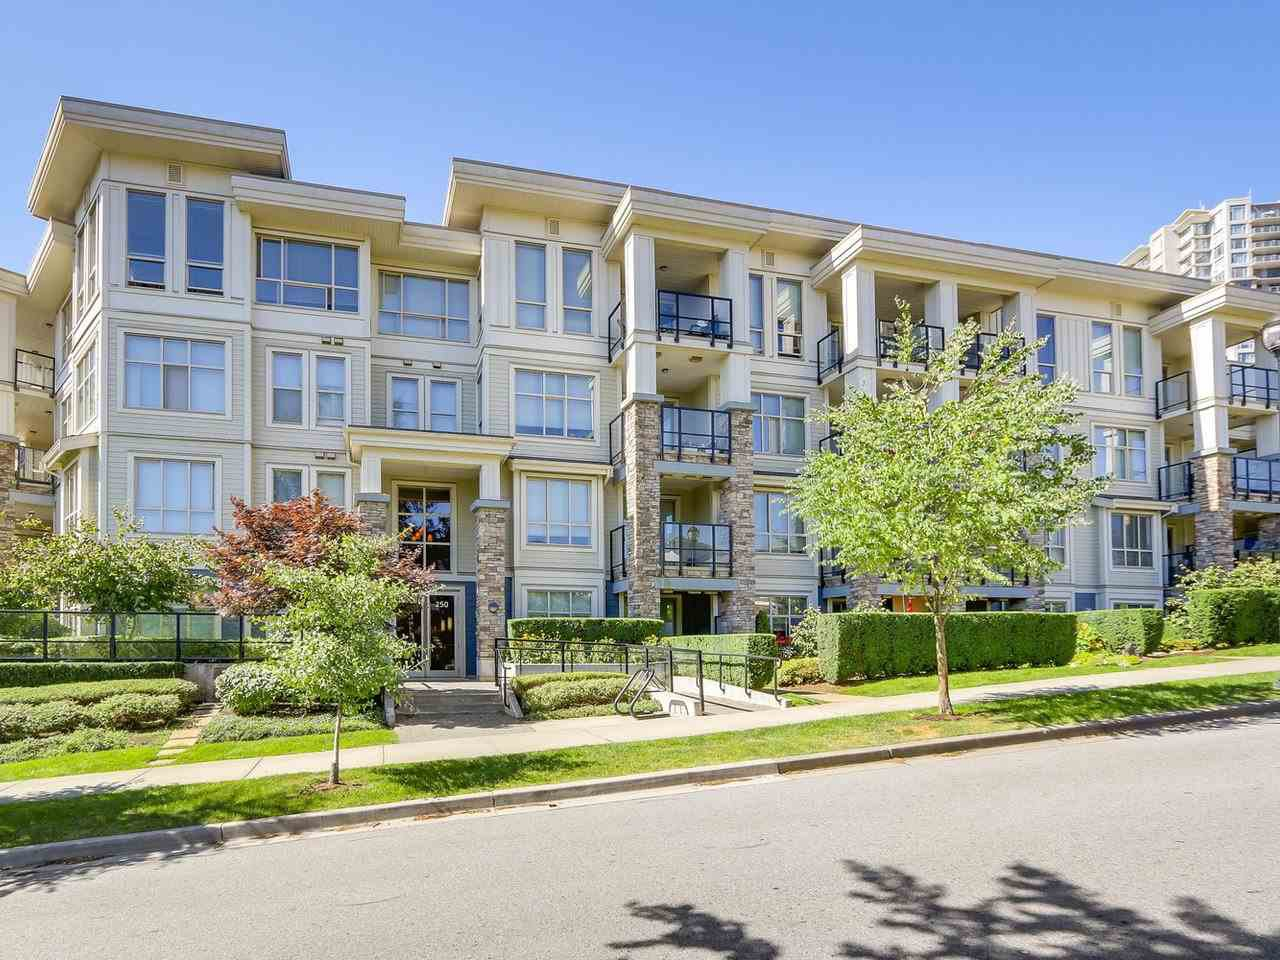 Main Photo: 408 250 FRANCIS WAY in New Westminster: Fraserview NW Condo for sale : MLS®# R2193497